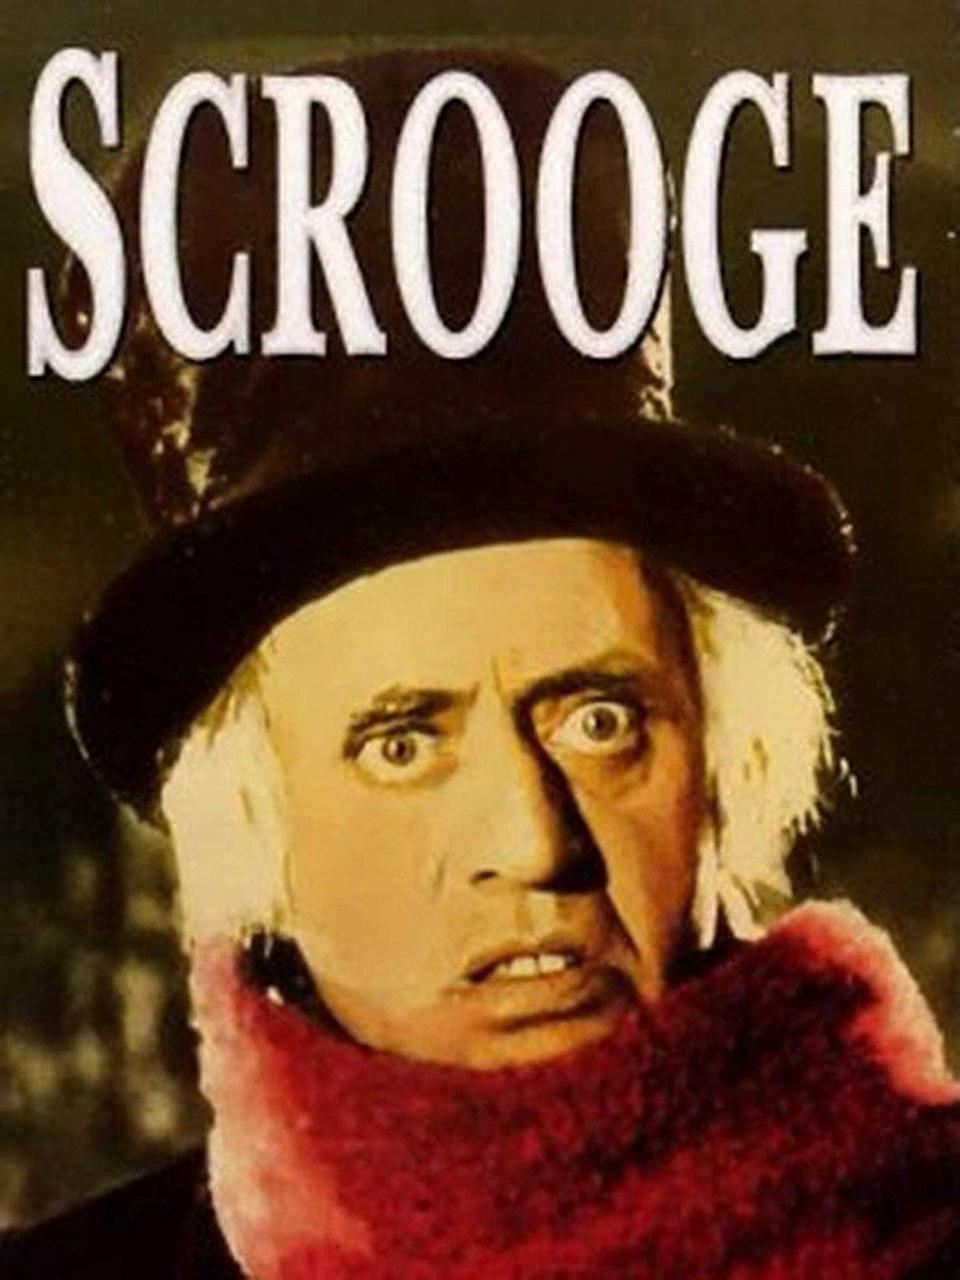 """<p>There are too many film adaptations of Charles Dickens's Christmas story to count, but this 1951 version (originally called <em>Scrooge</em> when it was first released) is considered to be the <a href=""""http://www.nytimes.com/video/movies/1194835382819/critics-picks-a-christmas-carol.html"""" rel=""""nofollow noopener"""" target=""""_blank"""" data-ylk=""""slk:best version"""" class=""""link rapid-noclick-resp"""">best version</a>, according to <em>The New York Times</em> film critic A.O. Scott.</p><p><a class=""""link rapid-noclick-resp"""" href=""""https://www.amazon.com/Scrooge-Alastair-Sim/dp/B07K8XTQG1/?tag=syn-yahoo-20&ascsubtag=%5Bartid%7C10055.g.1315%5Bsrc%7Cyahoo-us"""" rel=""""nofollow noopener"""" target=""""_blank"""" data-ylk=""""slk:WATCH NOW"""">WATCH NOW</a></p>"""